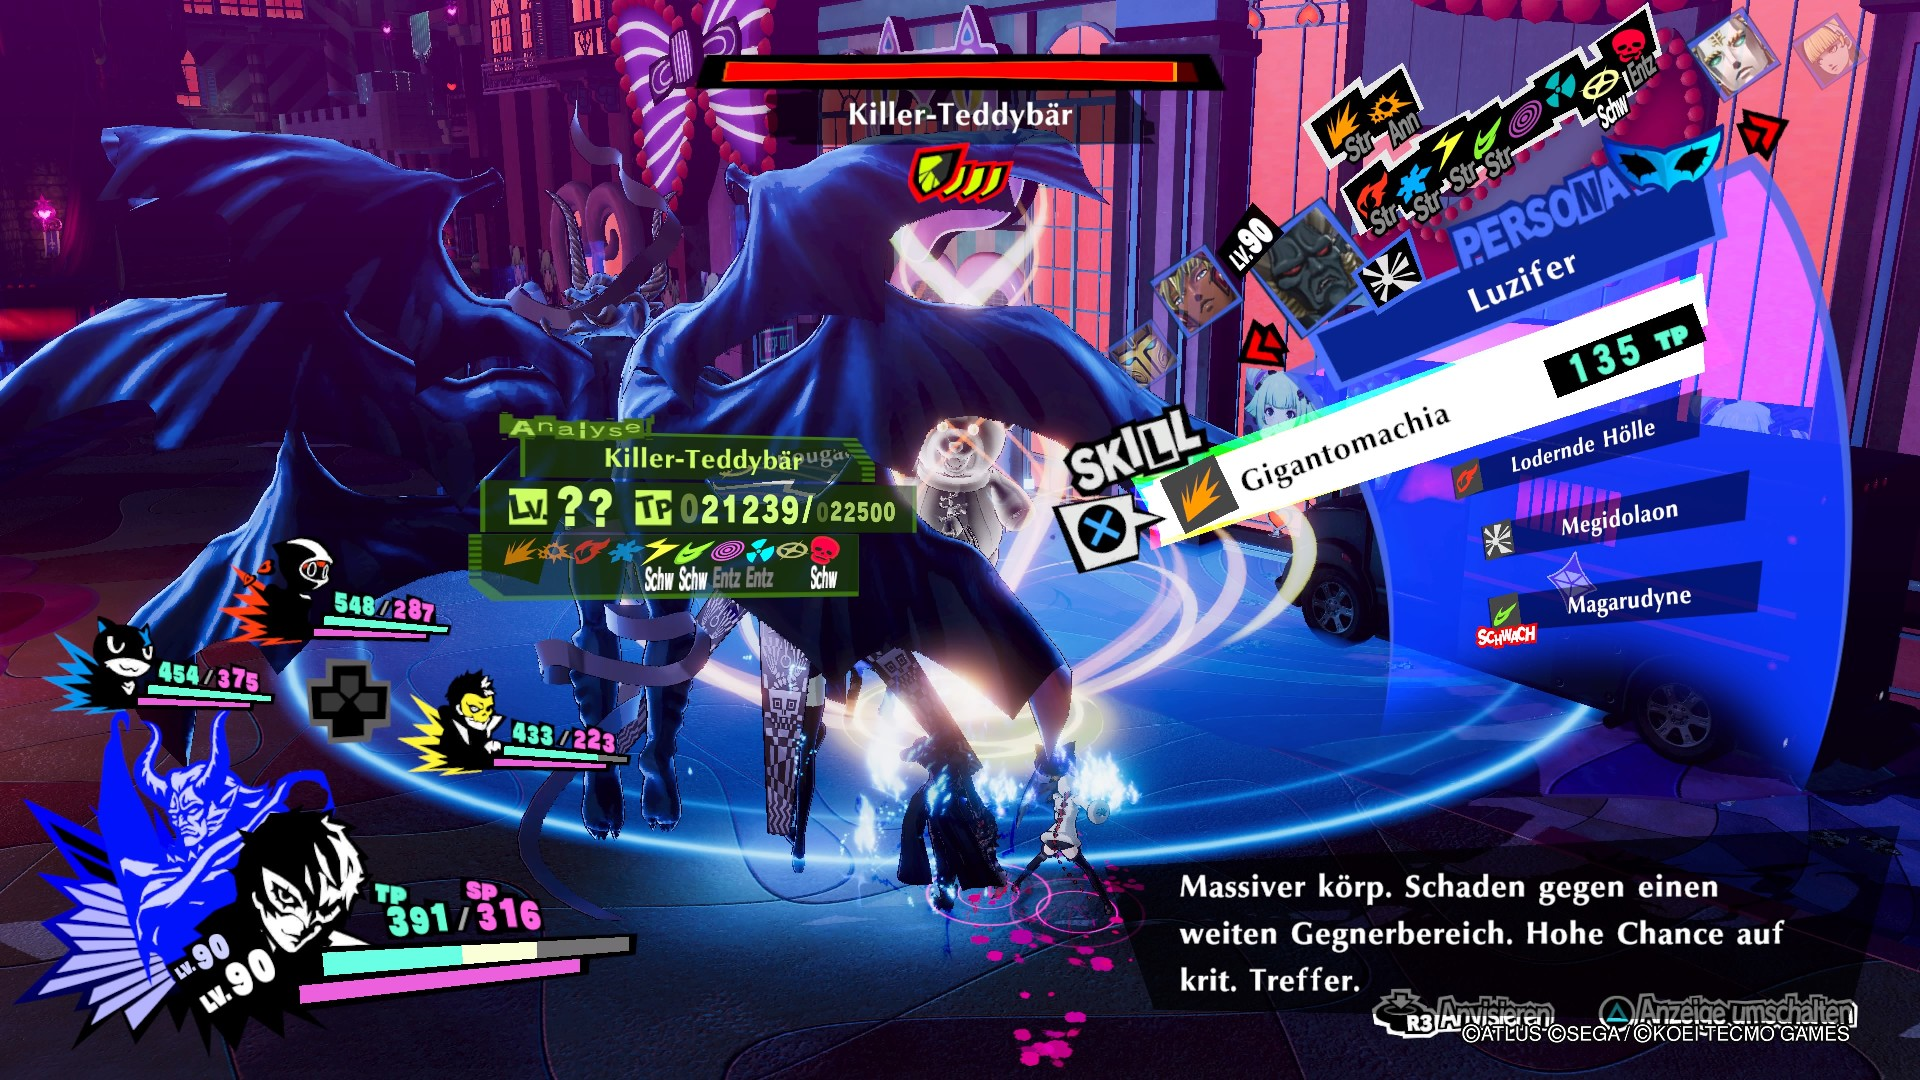 Persona 5 Strikers Dire Shadow Düstershatten Shibuya PS4 RPG JRPG Guide